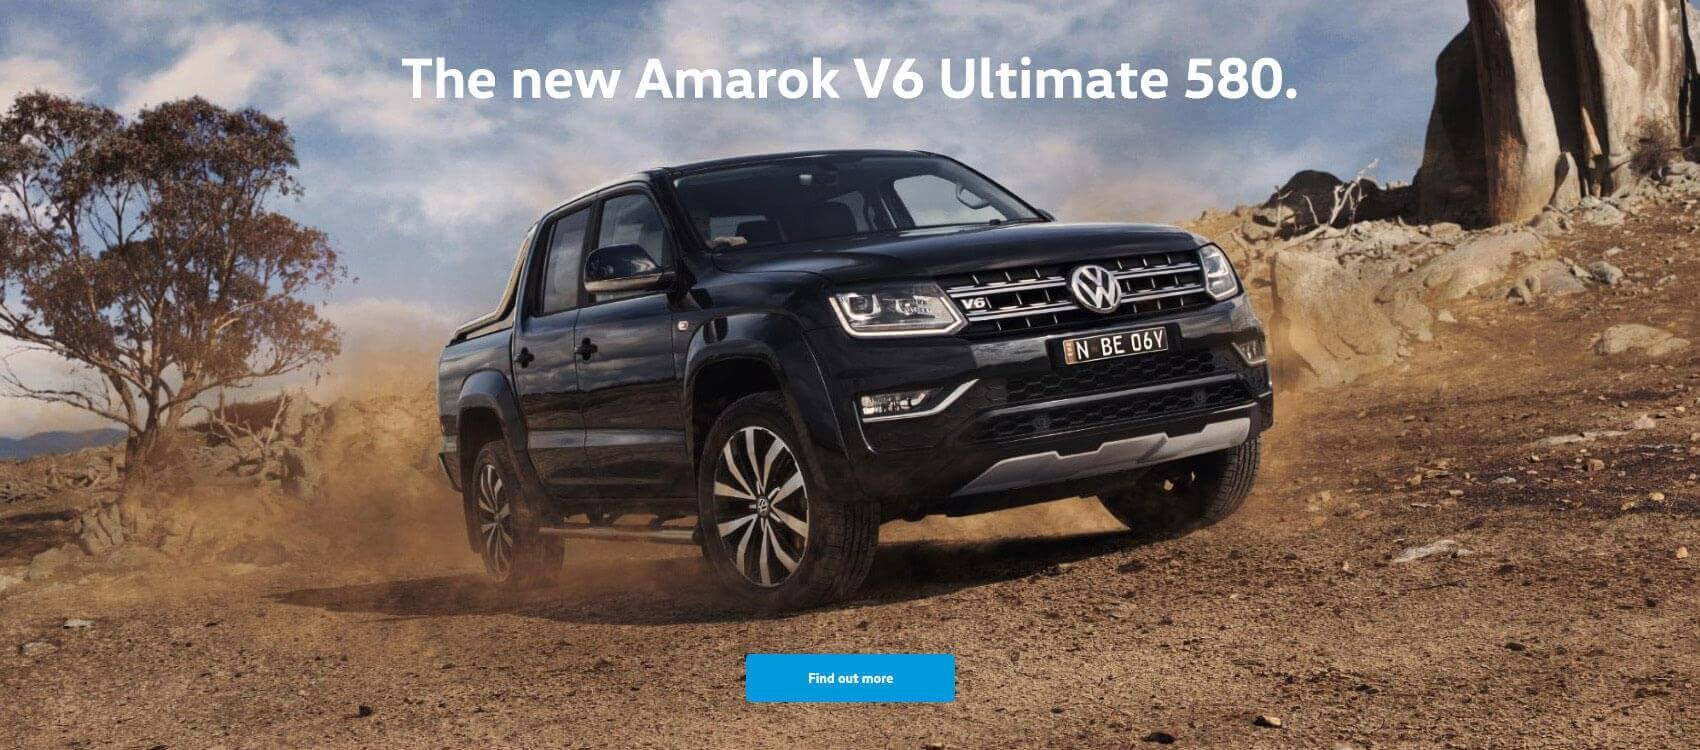 The new Amarok V6 Ultimate 580.